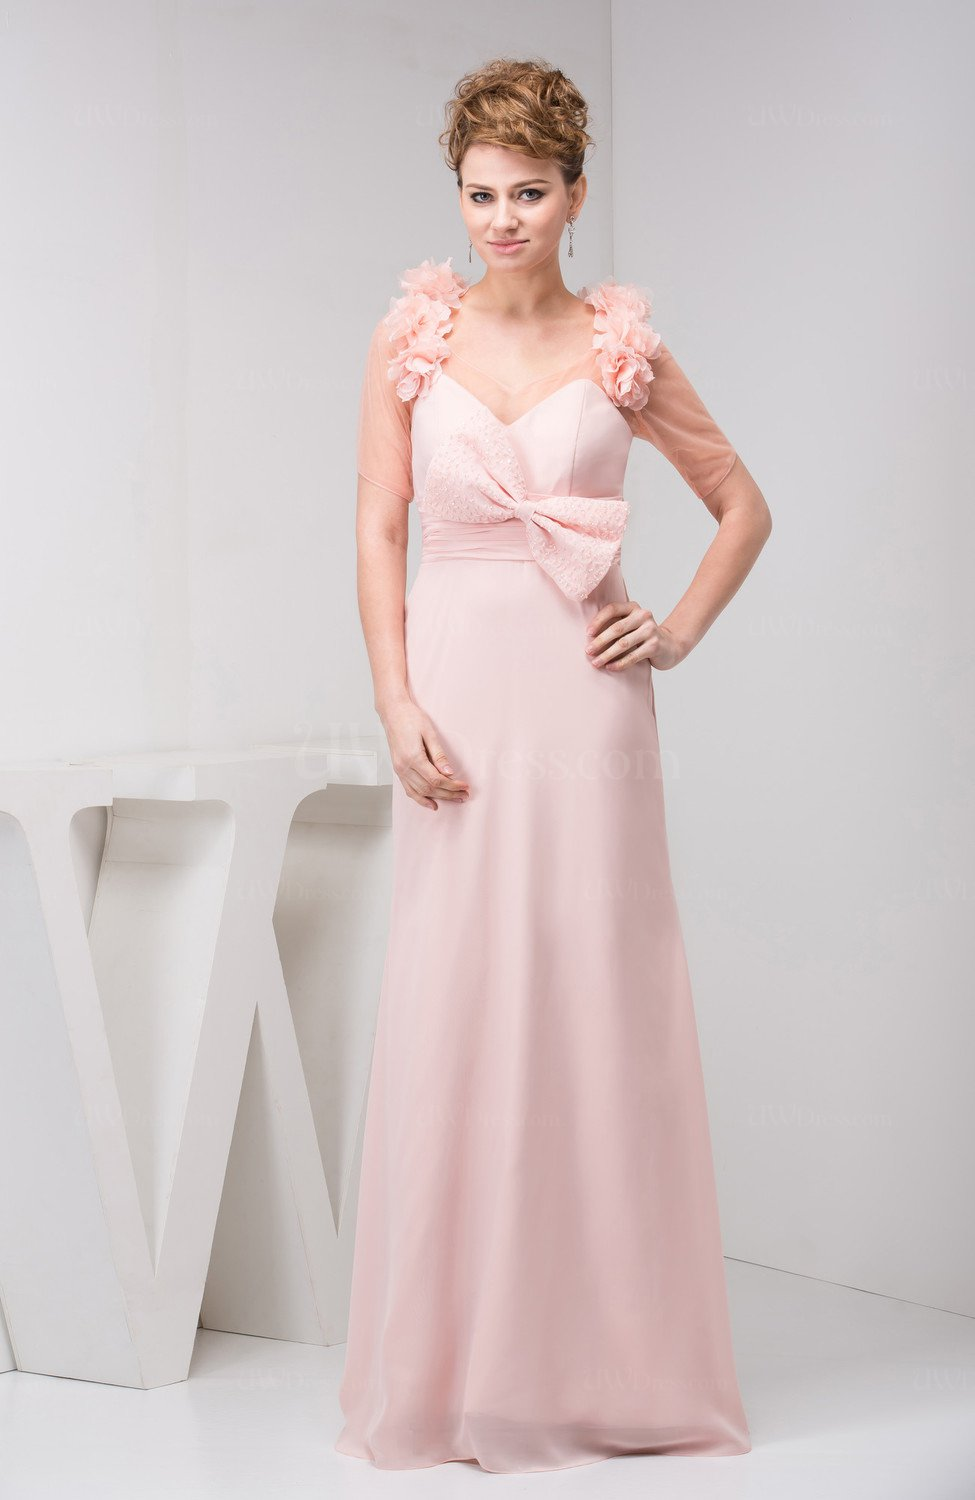 Light Pink Chiffon Bridesmaid Dress with Sleeves Illusion